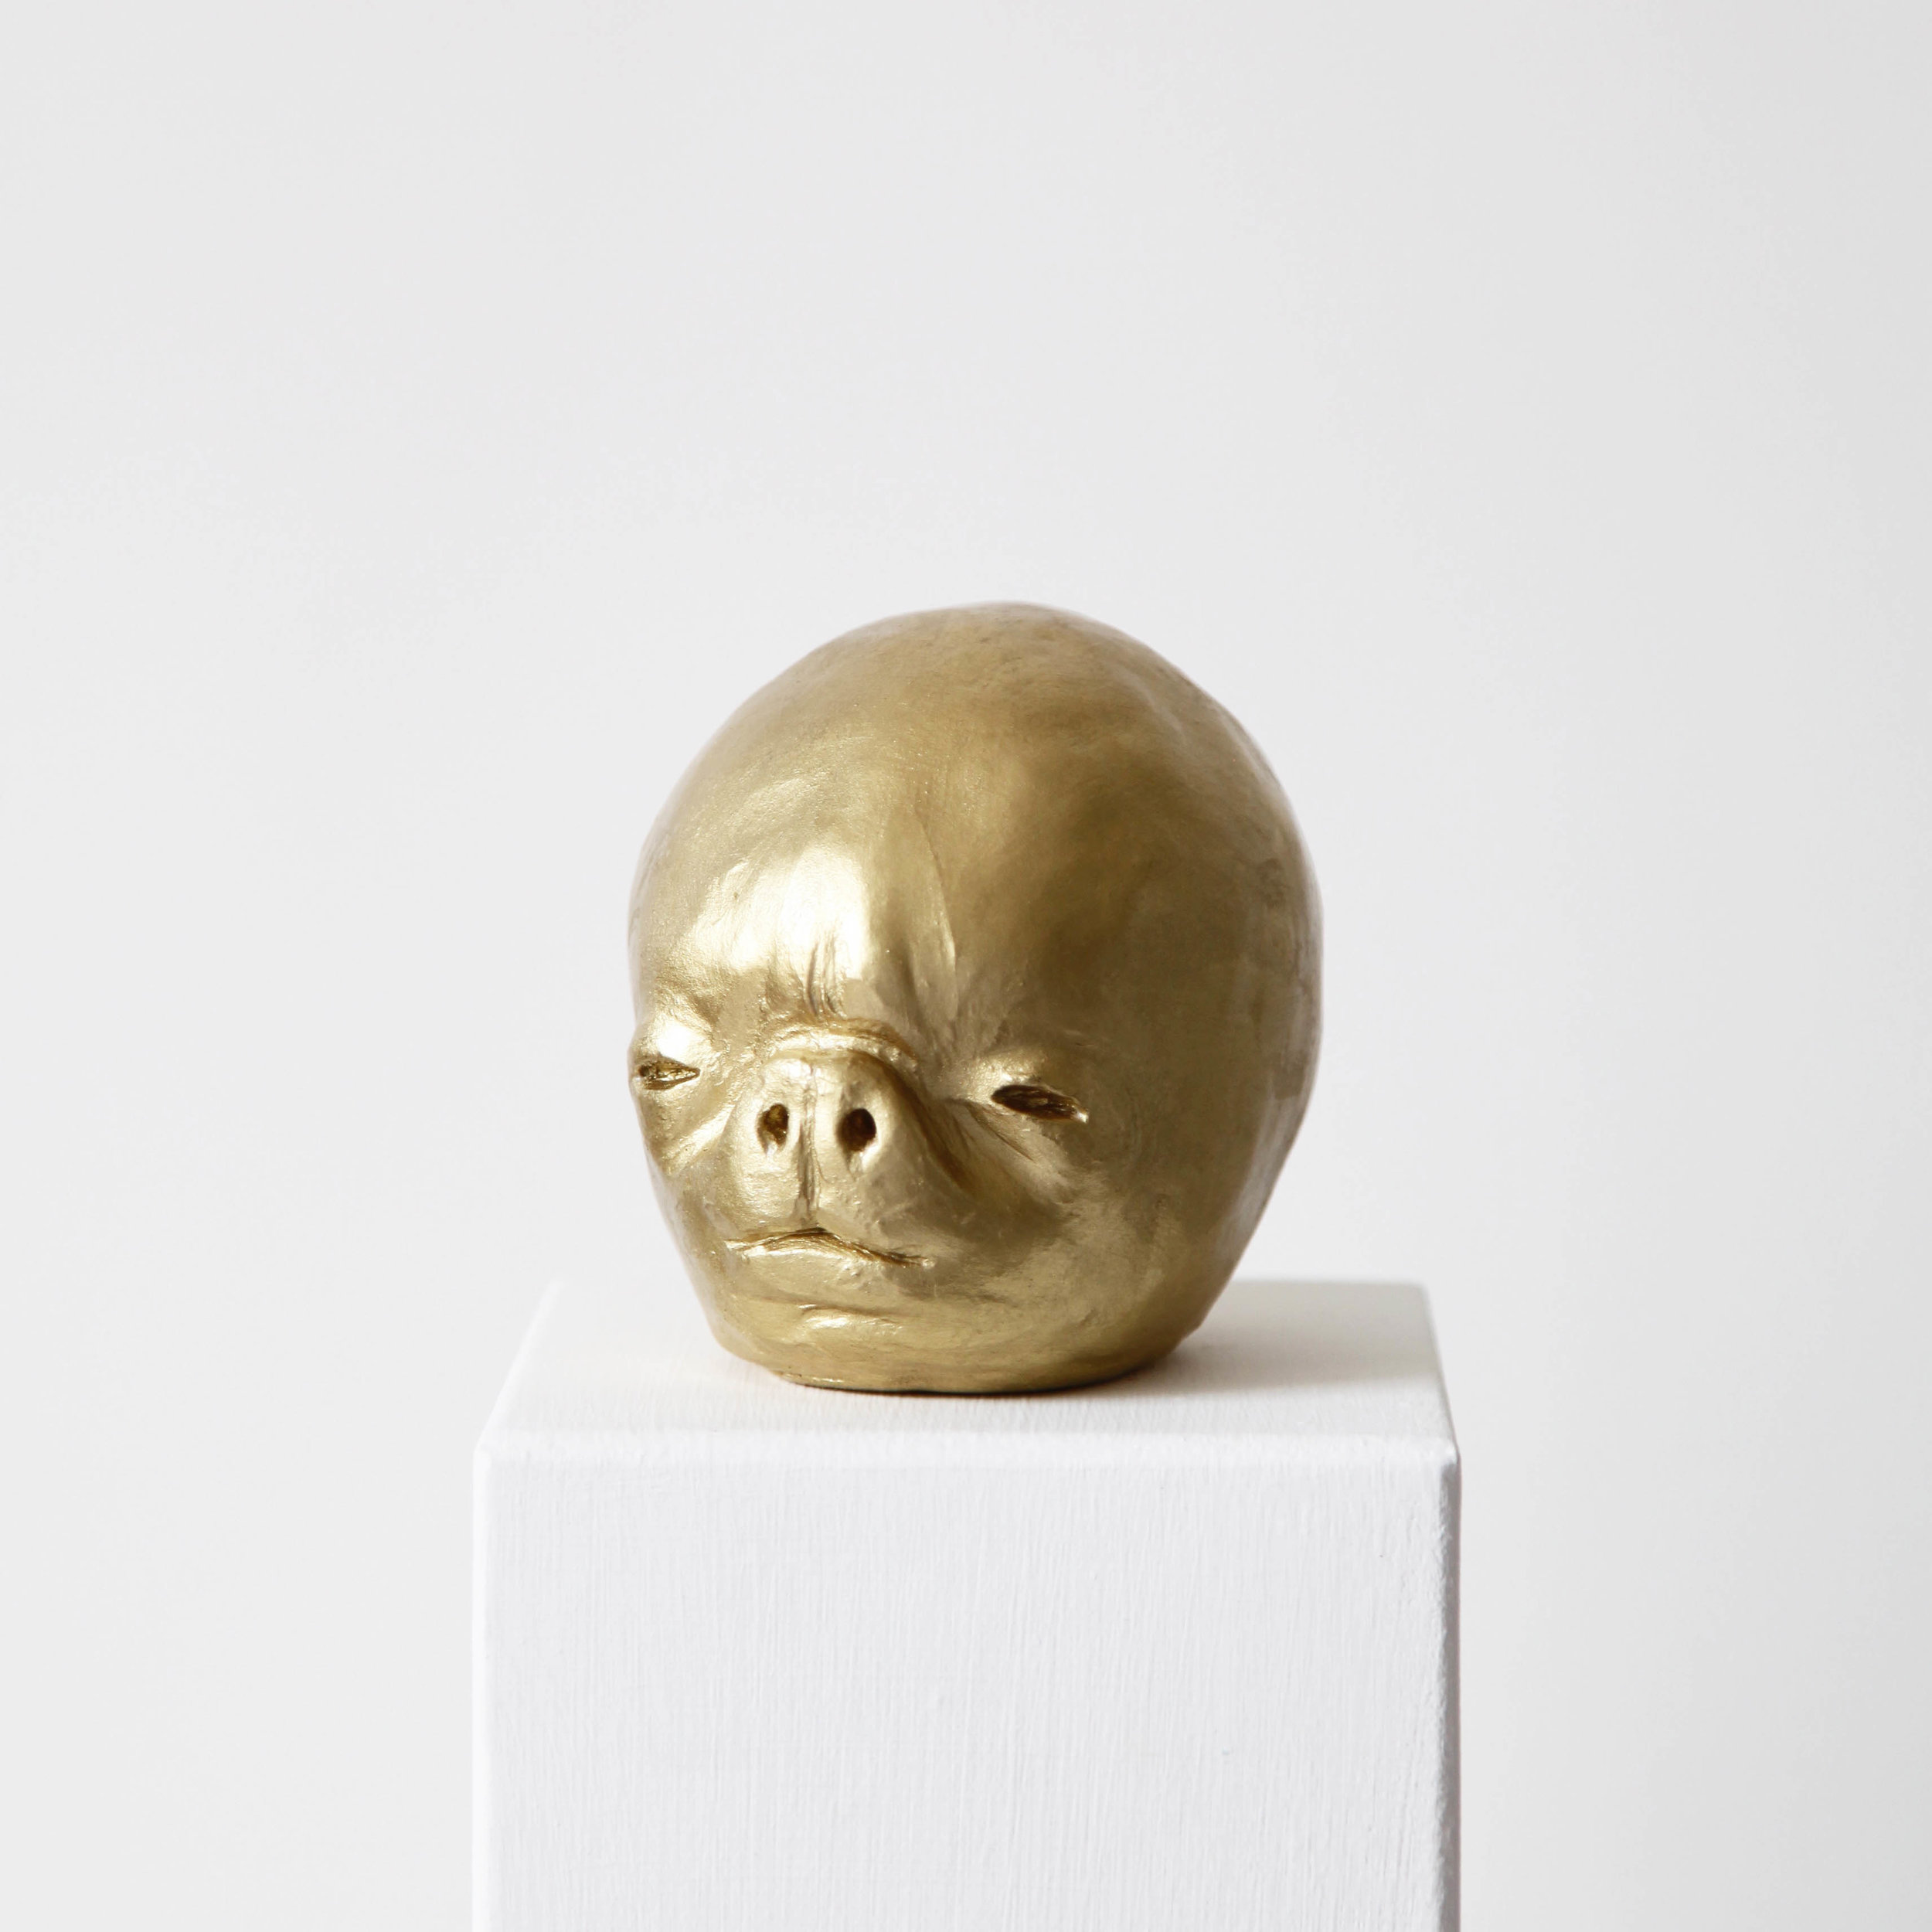 Facial development of the human embryo III  , 2017, raw clay, yellow gold pigment, lacquer and varnish, 10,6x12x9,5cm